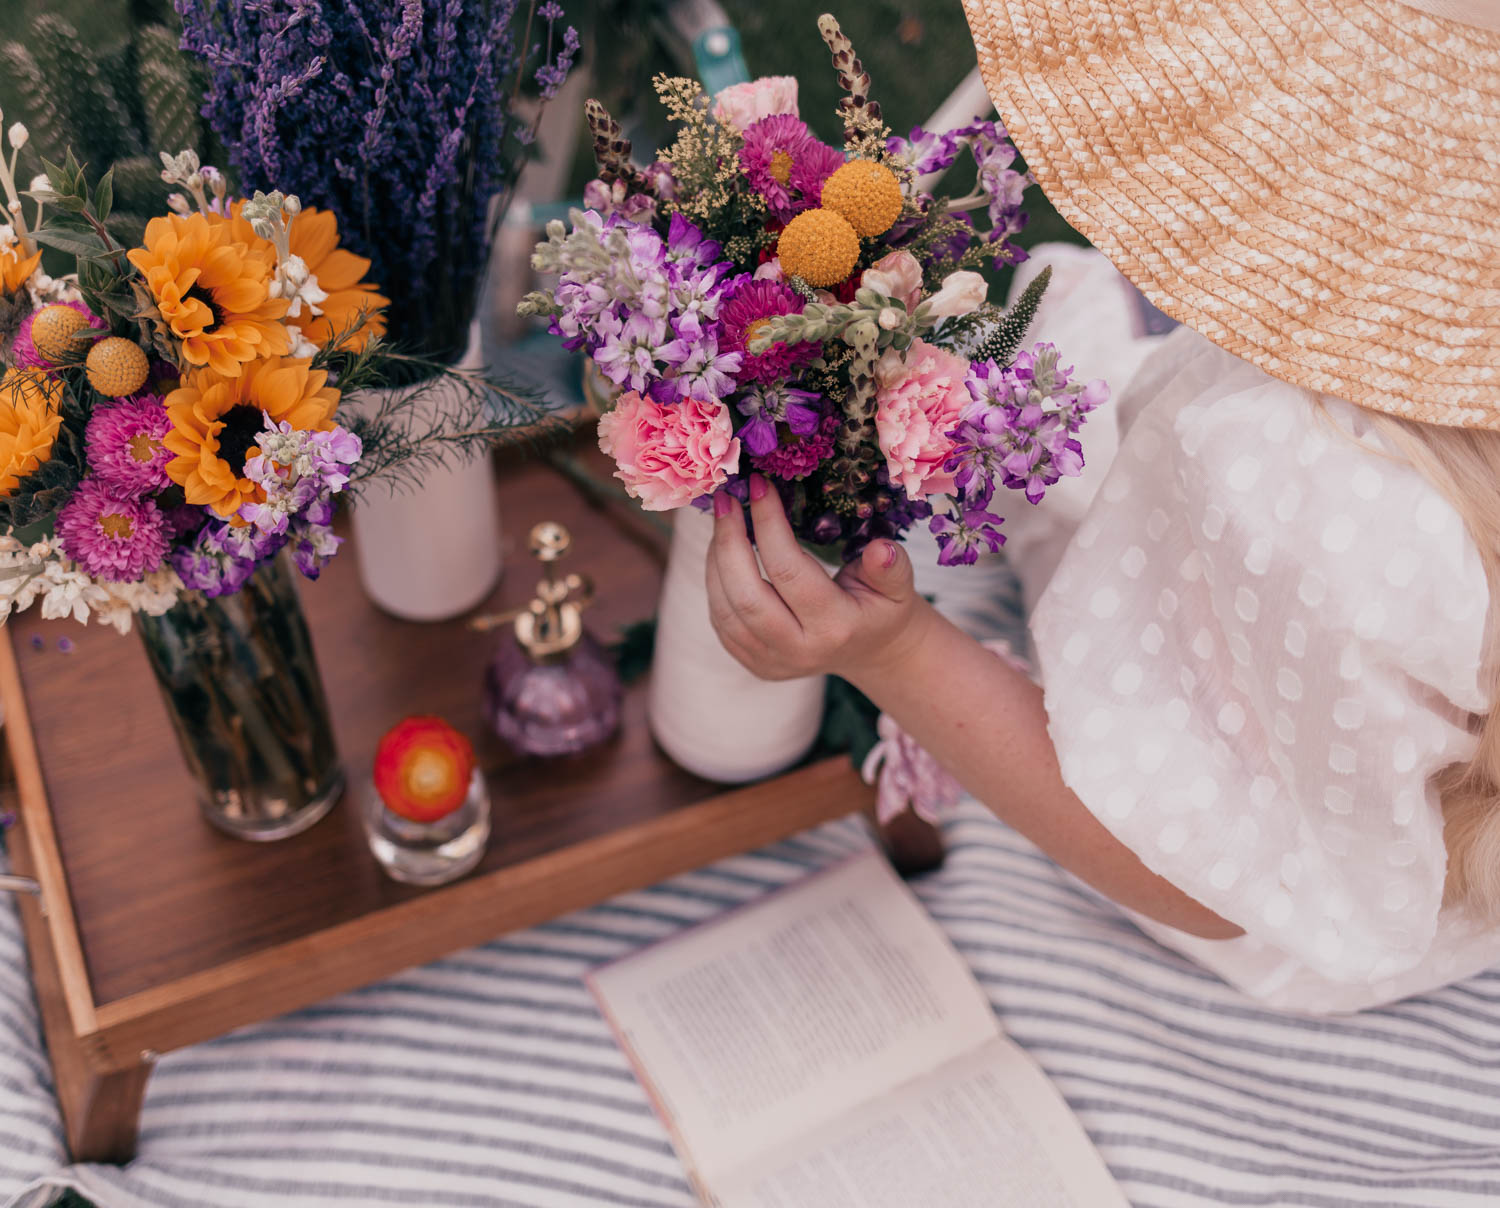 Feminine Fashion Blogger Elizabeth Hugen of Lizzie in Lace shares her June 2021 Month in Review and her feminine picnic outfit including a white puff sleeve dress and Urban stems flower bouquets